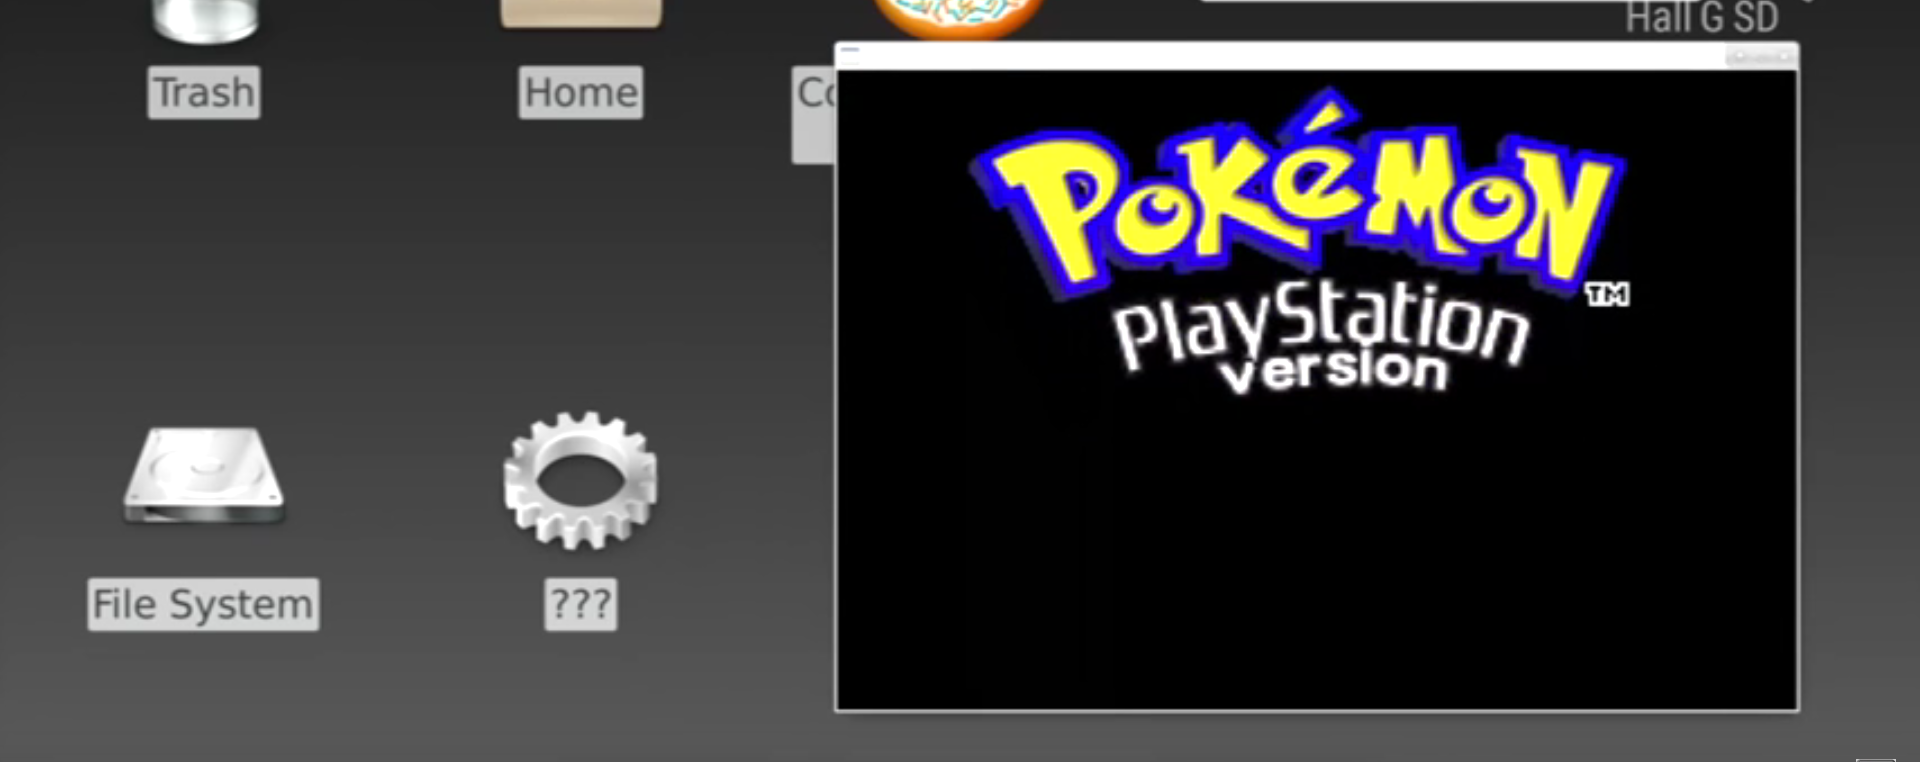 PS4 hacked to run Pokemon  SteamOS should